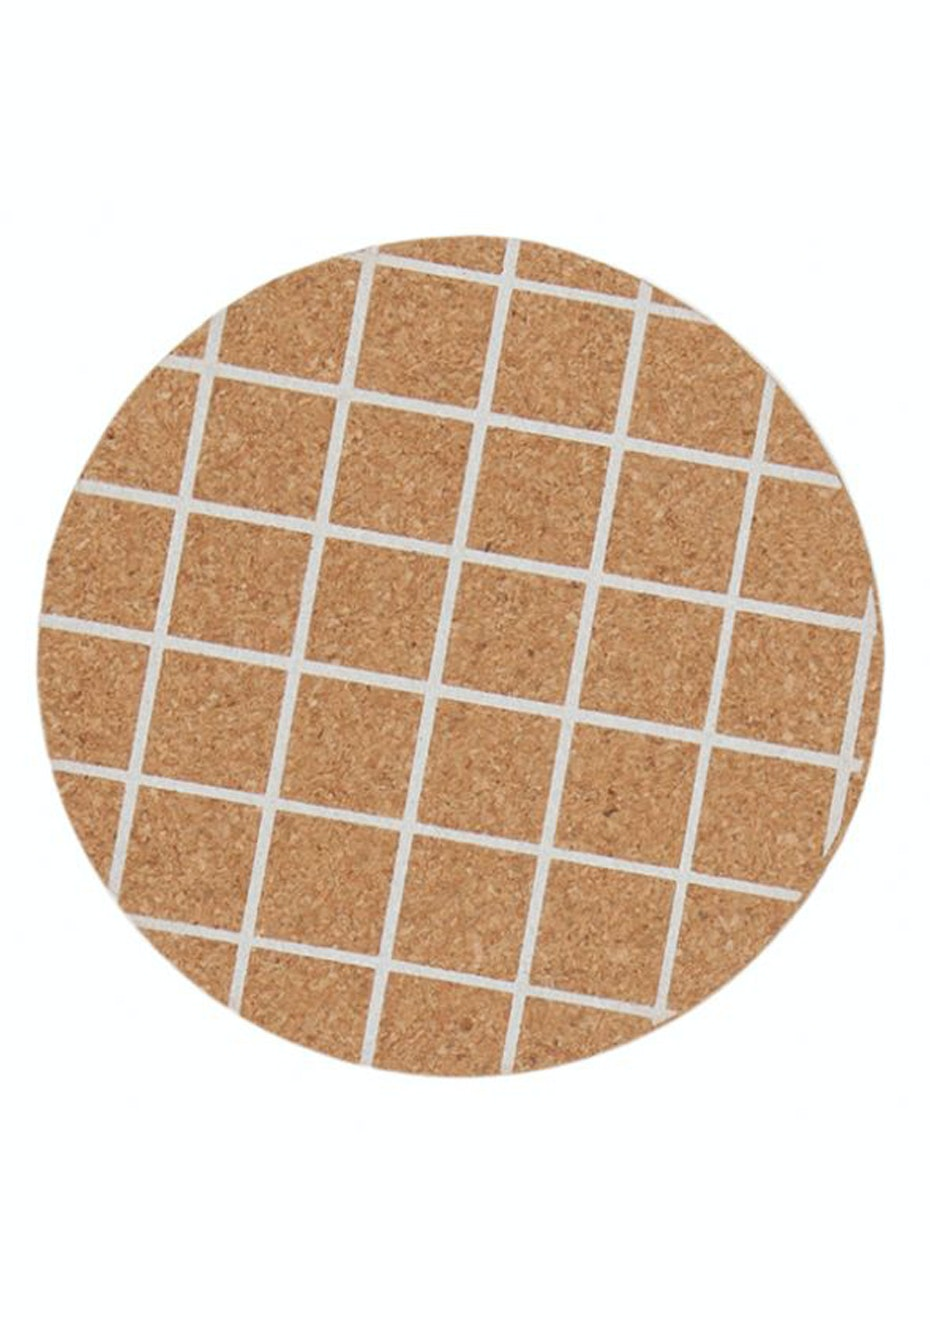 General Eclectic - Cork Coaster White Grid - Set of 4